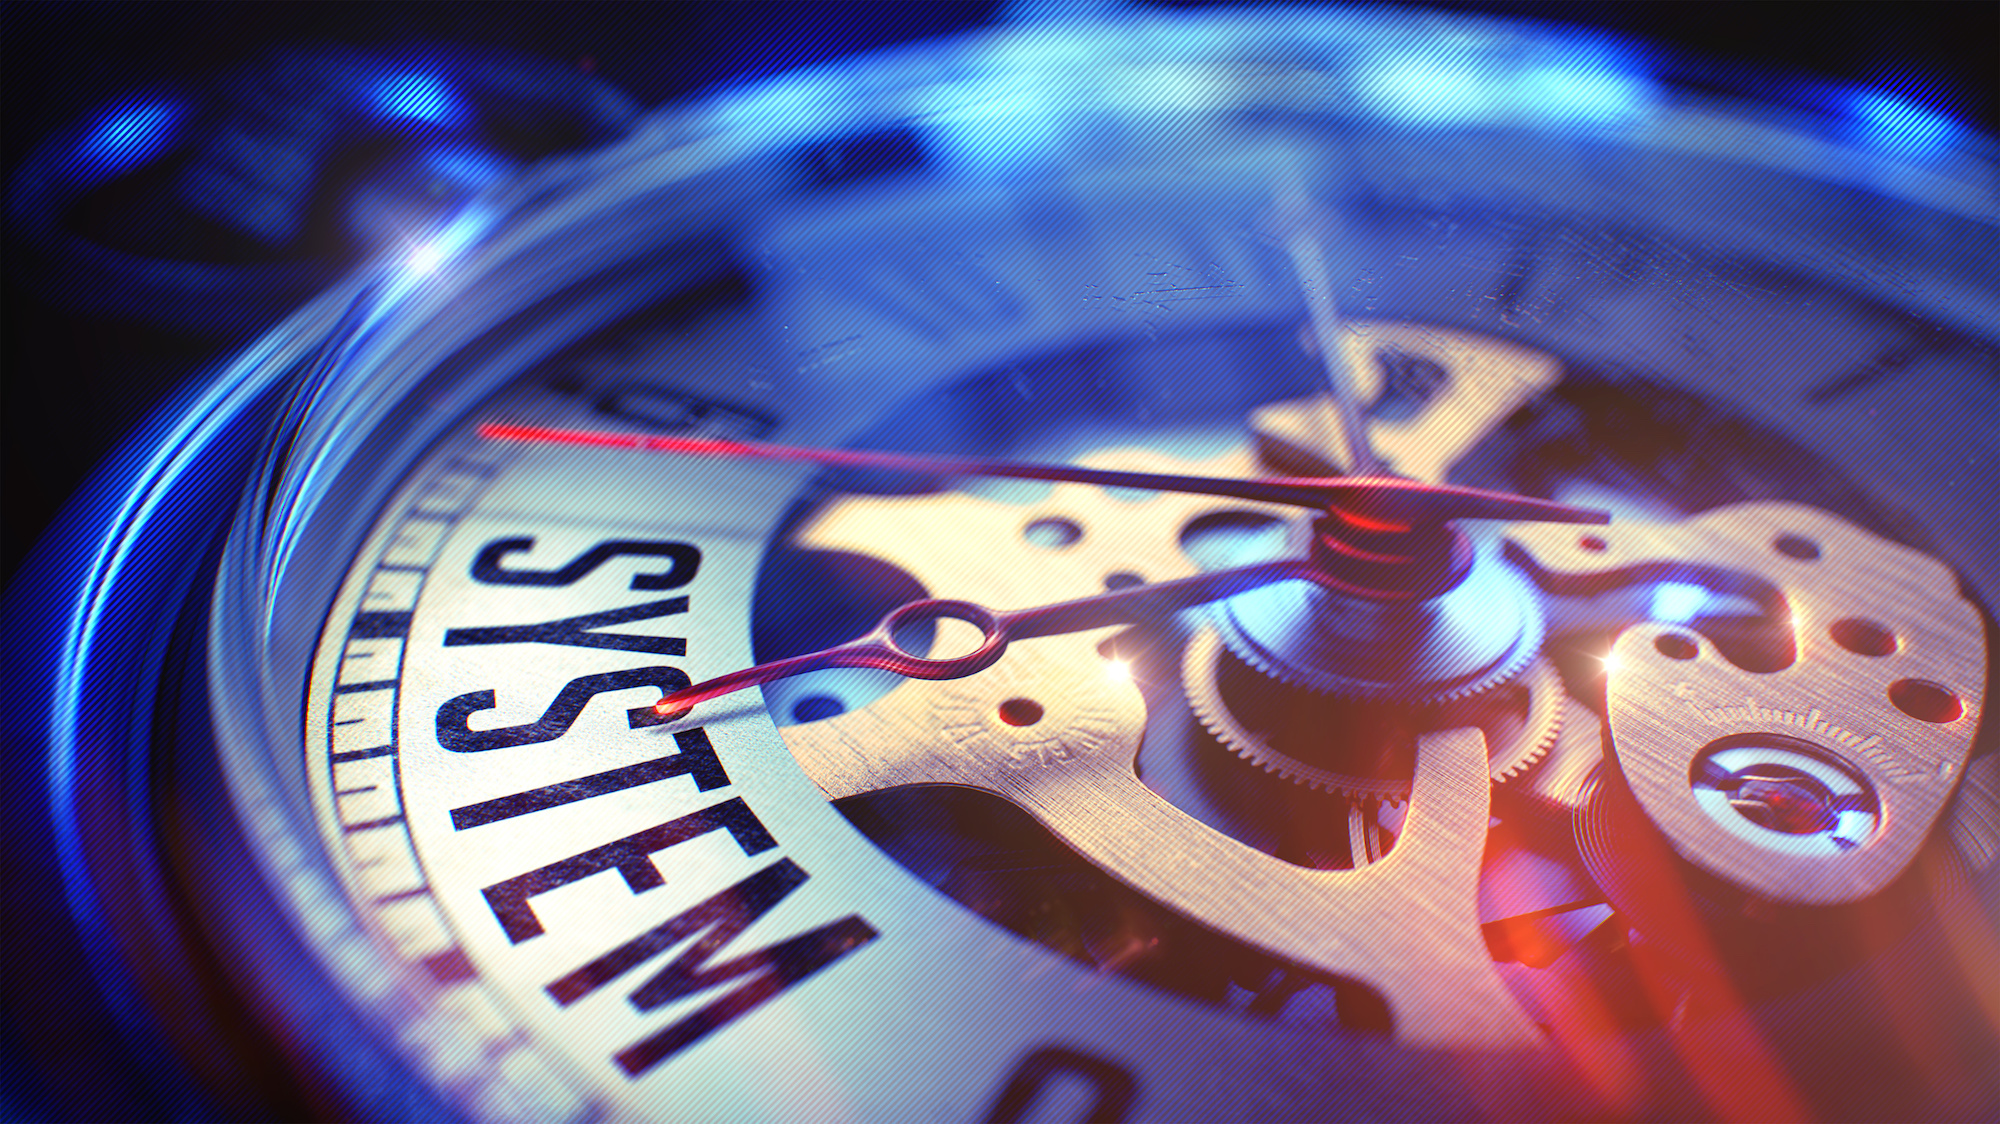 Clock and Bell Systems - Learn More